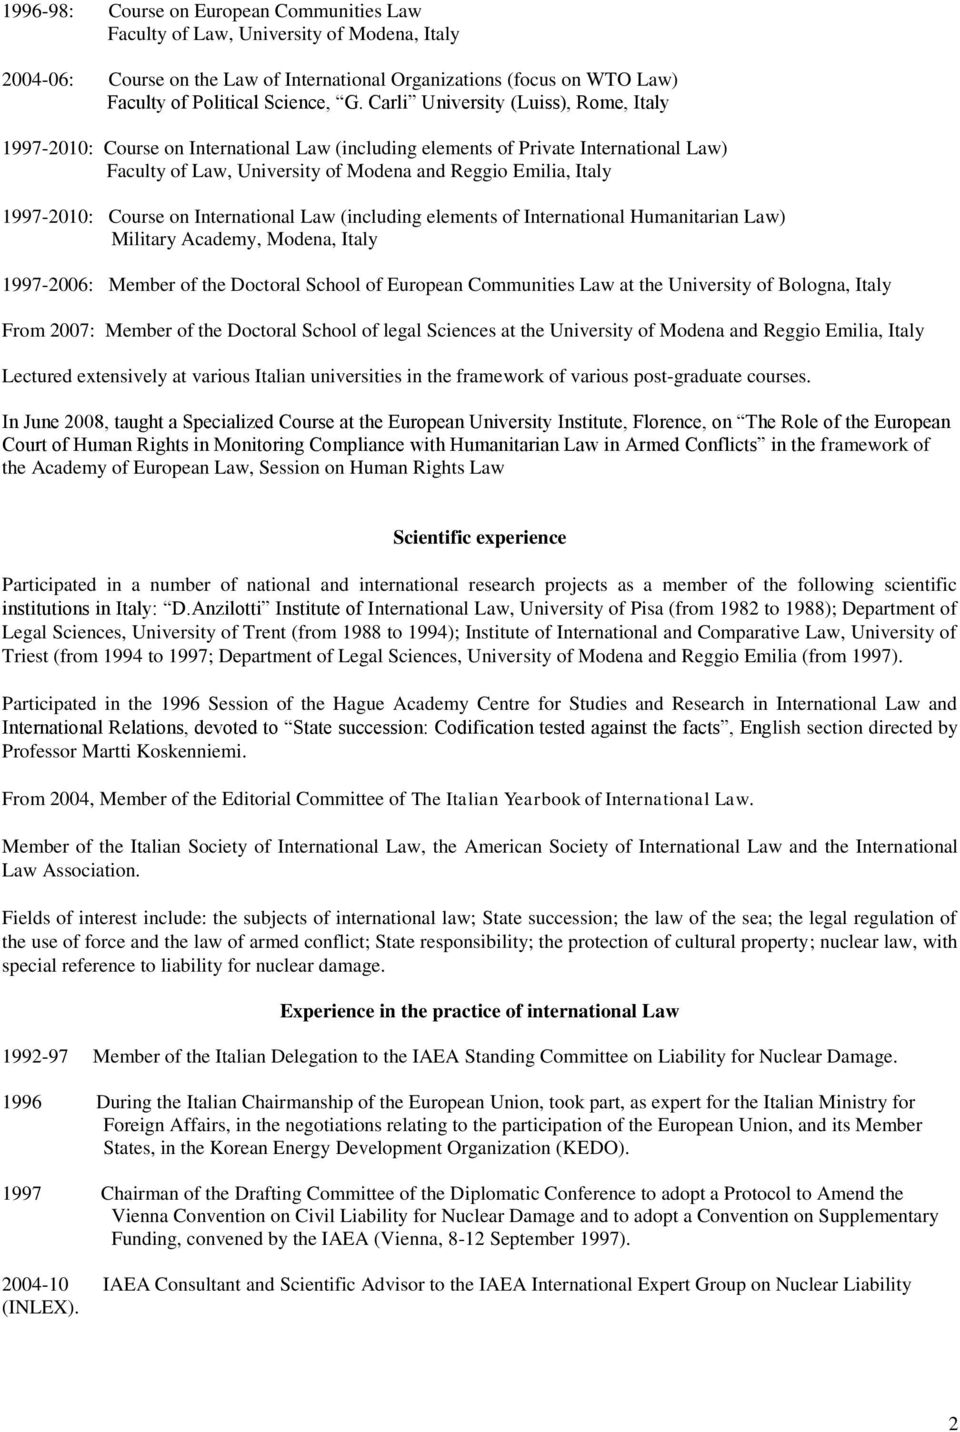 Course on International Law (including elements of International Humanitarian Law) Military Academy, Modena, Italy 1997-2006: Member of the Doctoral School of European Communities Law at the